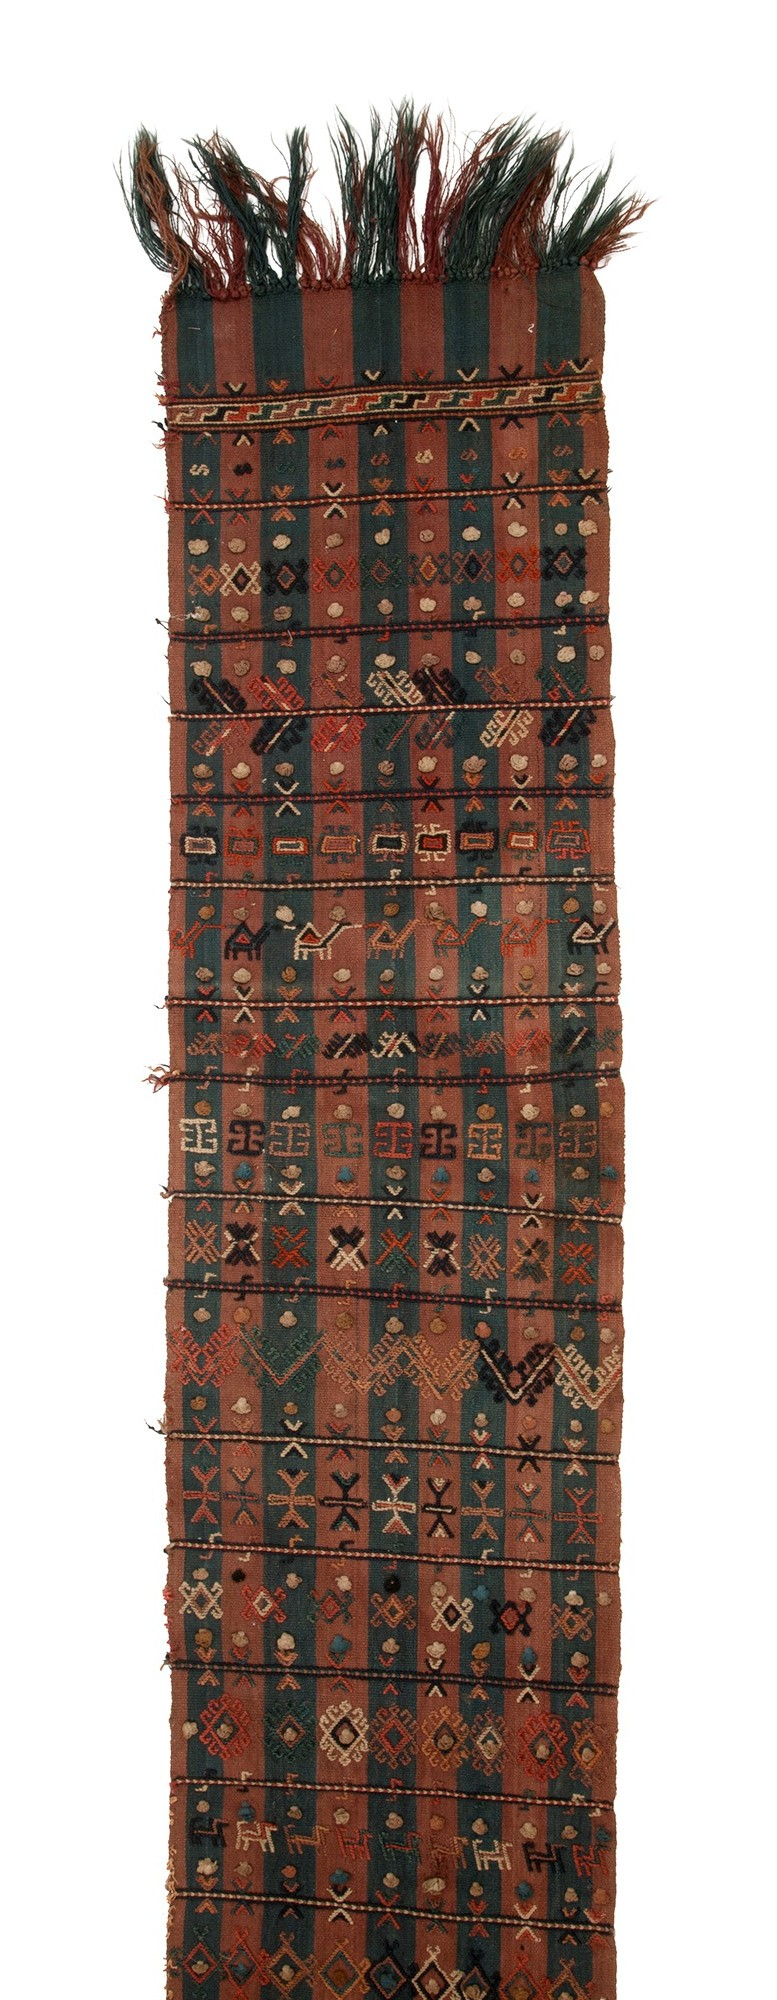 Important Oceanic & African Art, 14 September 2013, Webb's, Auckland Lot 296, Kurdish flatwoven tent divider, L.3000mm, W.410mm. Estimate NZ$1,500 - 2,500 Entirely covered with embroidered geometric linear and figural designs. Depicting camels, humans, horses and butterflies rarely seen on these weavings. Kurdish tribe near Mashhad, Northeast Iran.